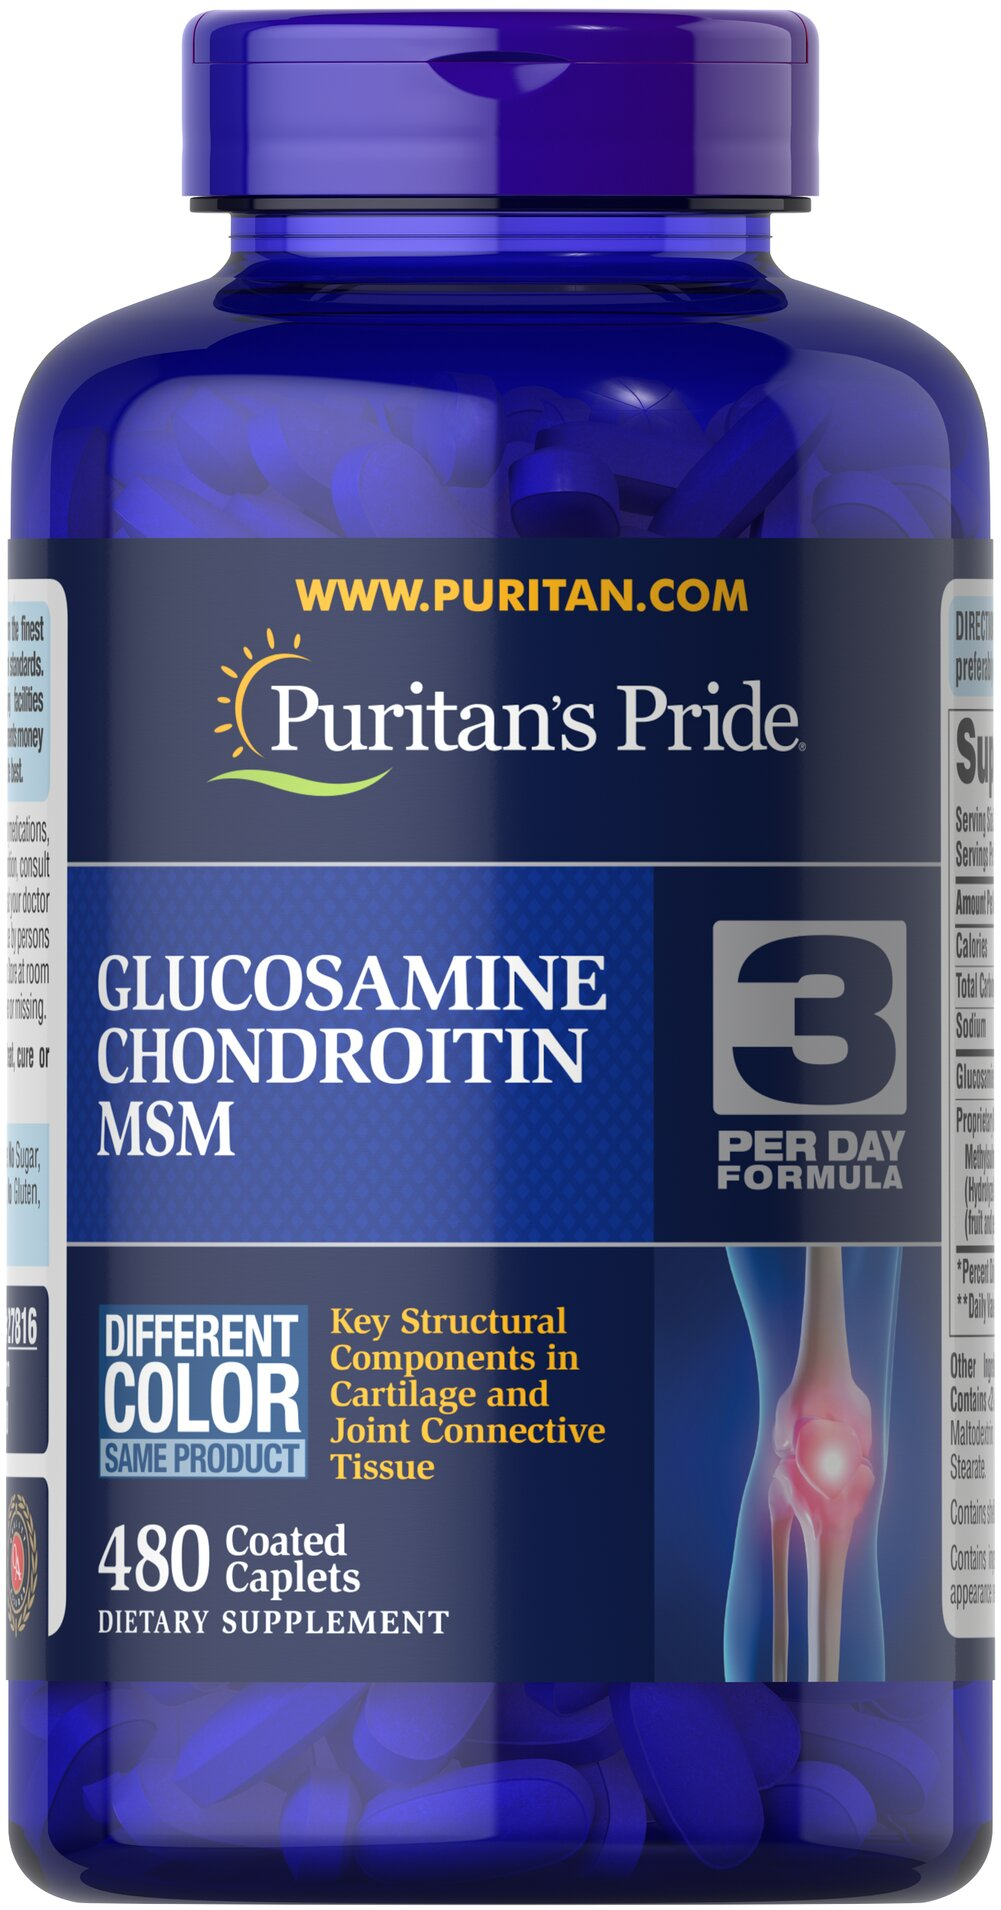 Double Strength Glucosamine, Chondroitin & MSM Joint Soother® <p>Combines the top three structural components found in popular joint support products — Glucosamine, Chondroitin and MSM — with amino and herbal support from Collagen and Boswellia Serrata**</p><p>This high-quality formula delivers 1,500 mg of Glucosamine Sulfate to help support cartilage, lubricate the joints, and helps with occasional joint stress due to exercise or physical activity**</p> 480 Capl